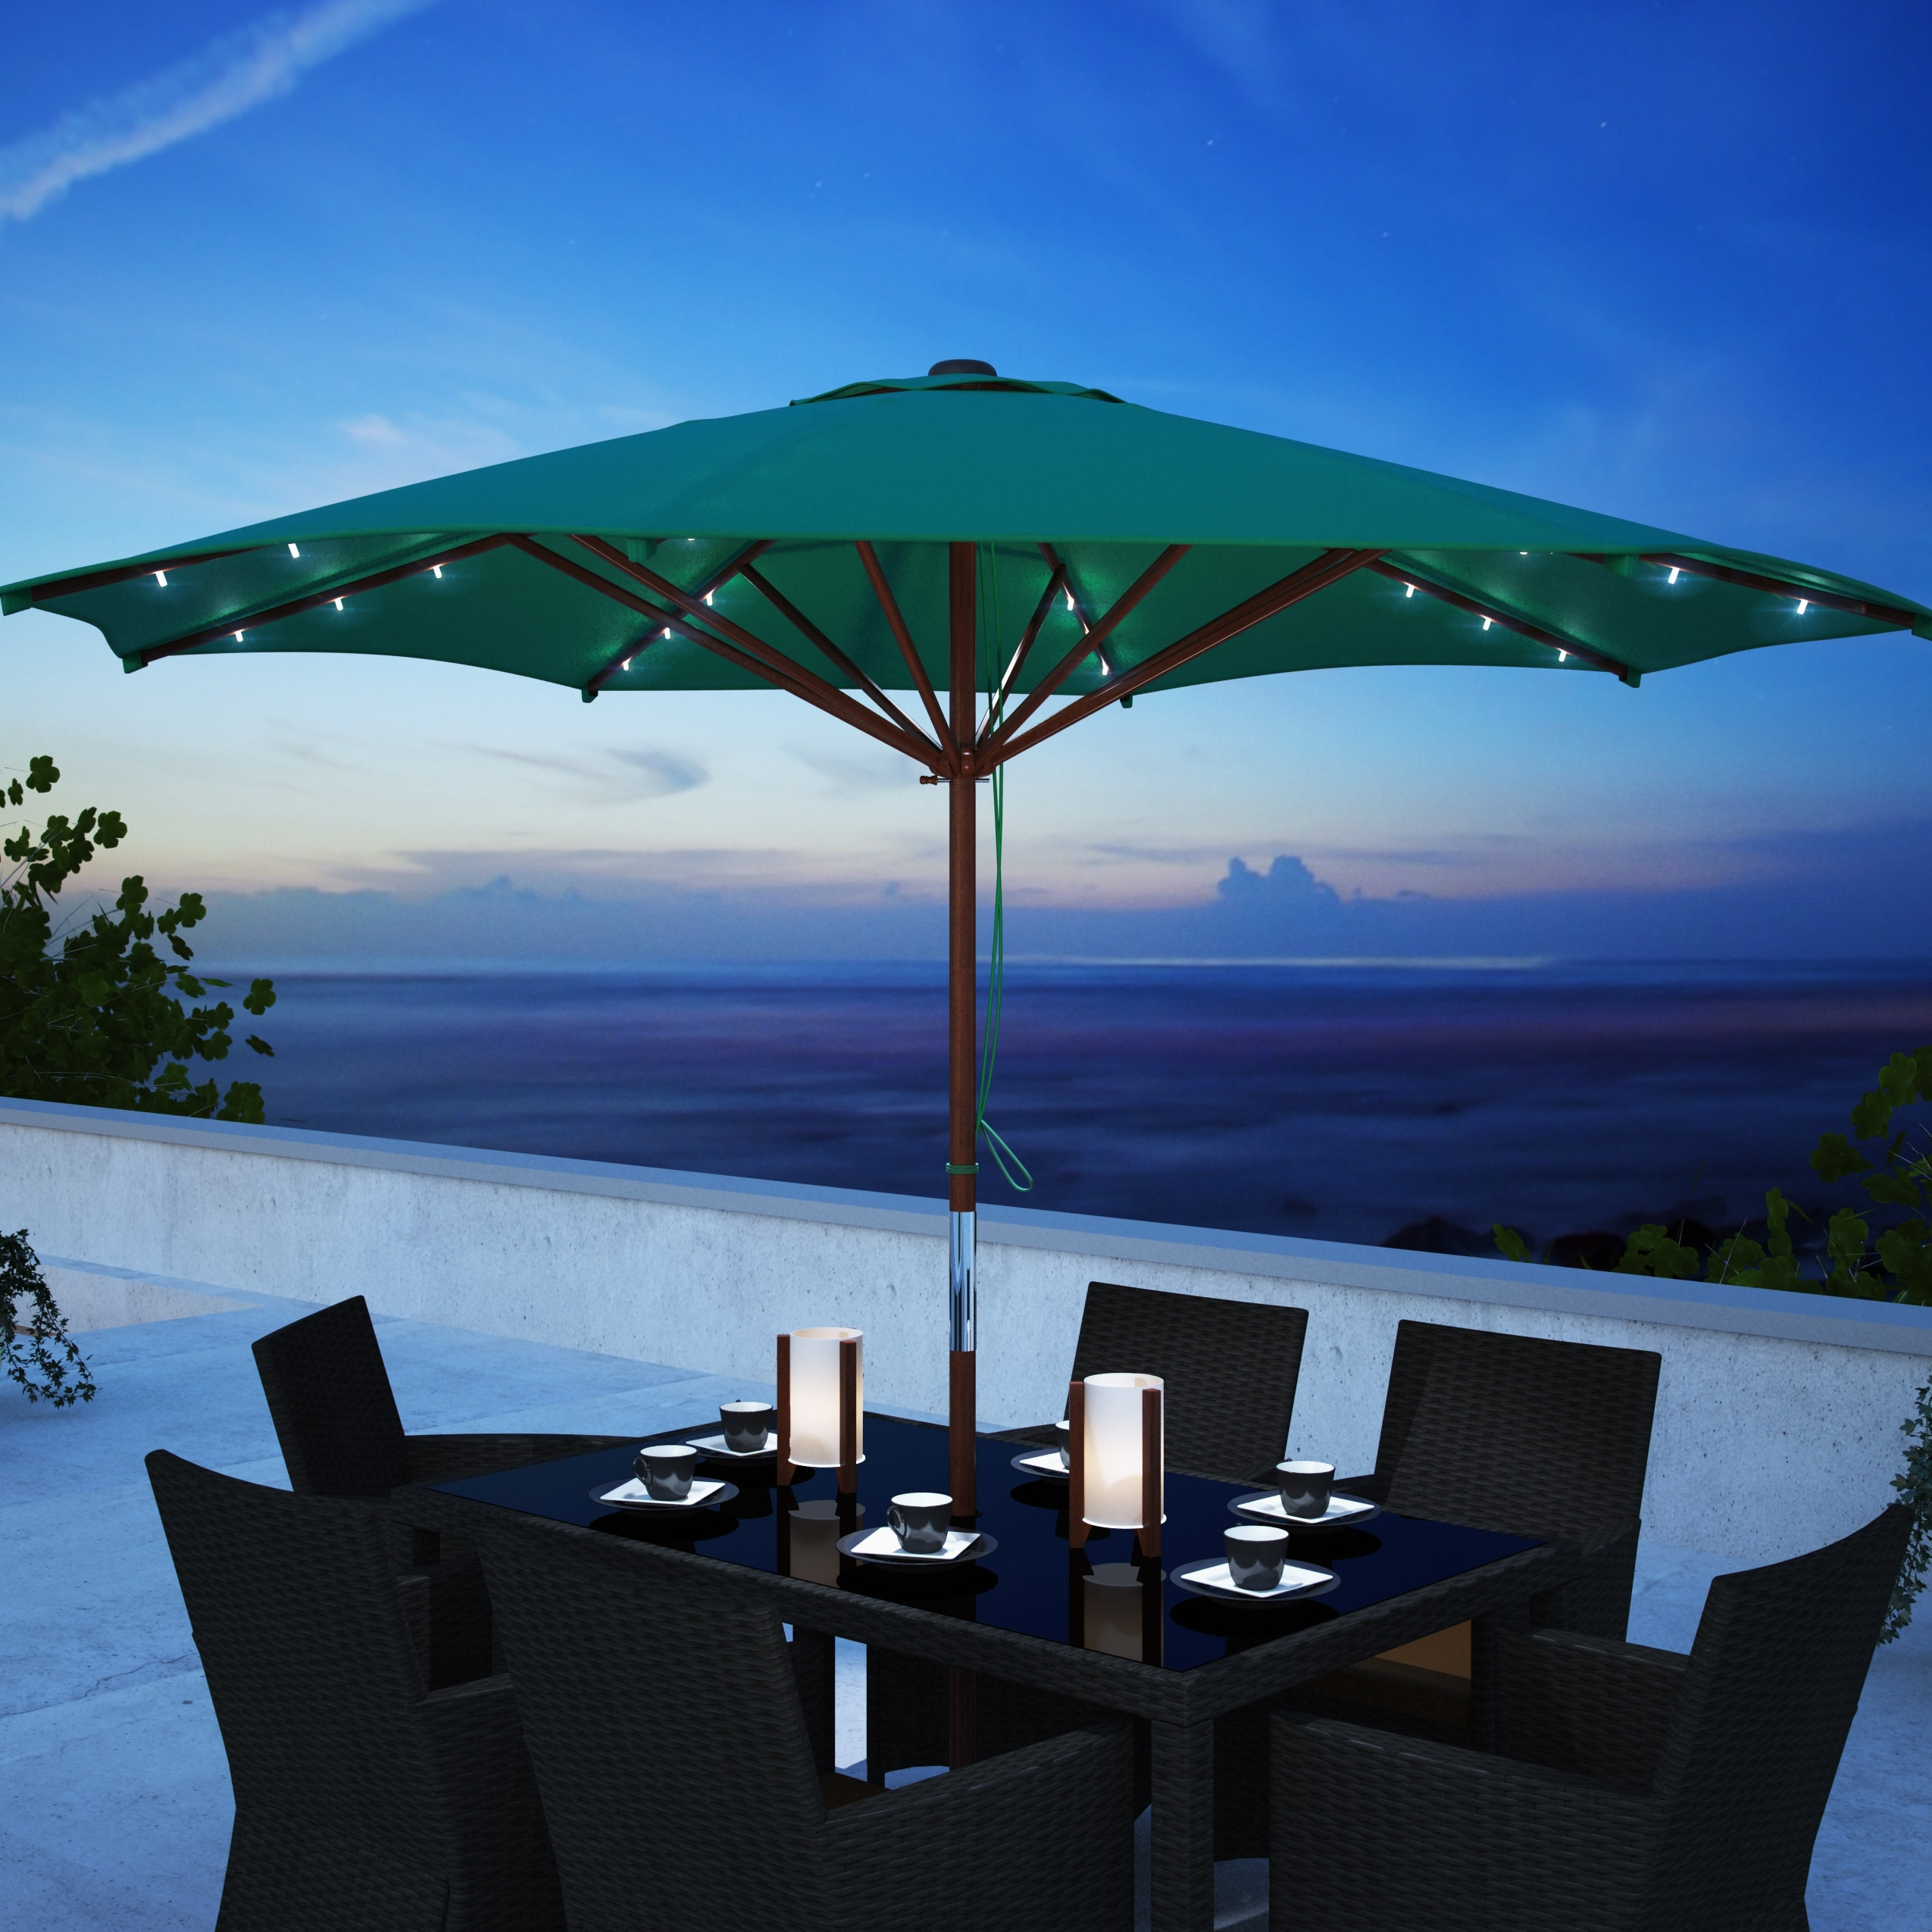 Solar Powered Patio Umbrellas In Well Known Corliving Patio Umbrella With Solar Power Led Lights Taupe (View 12 of 20)